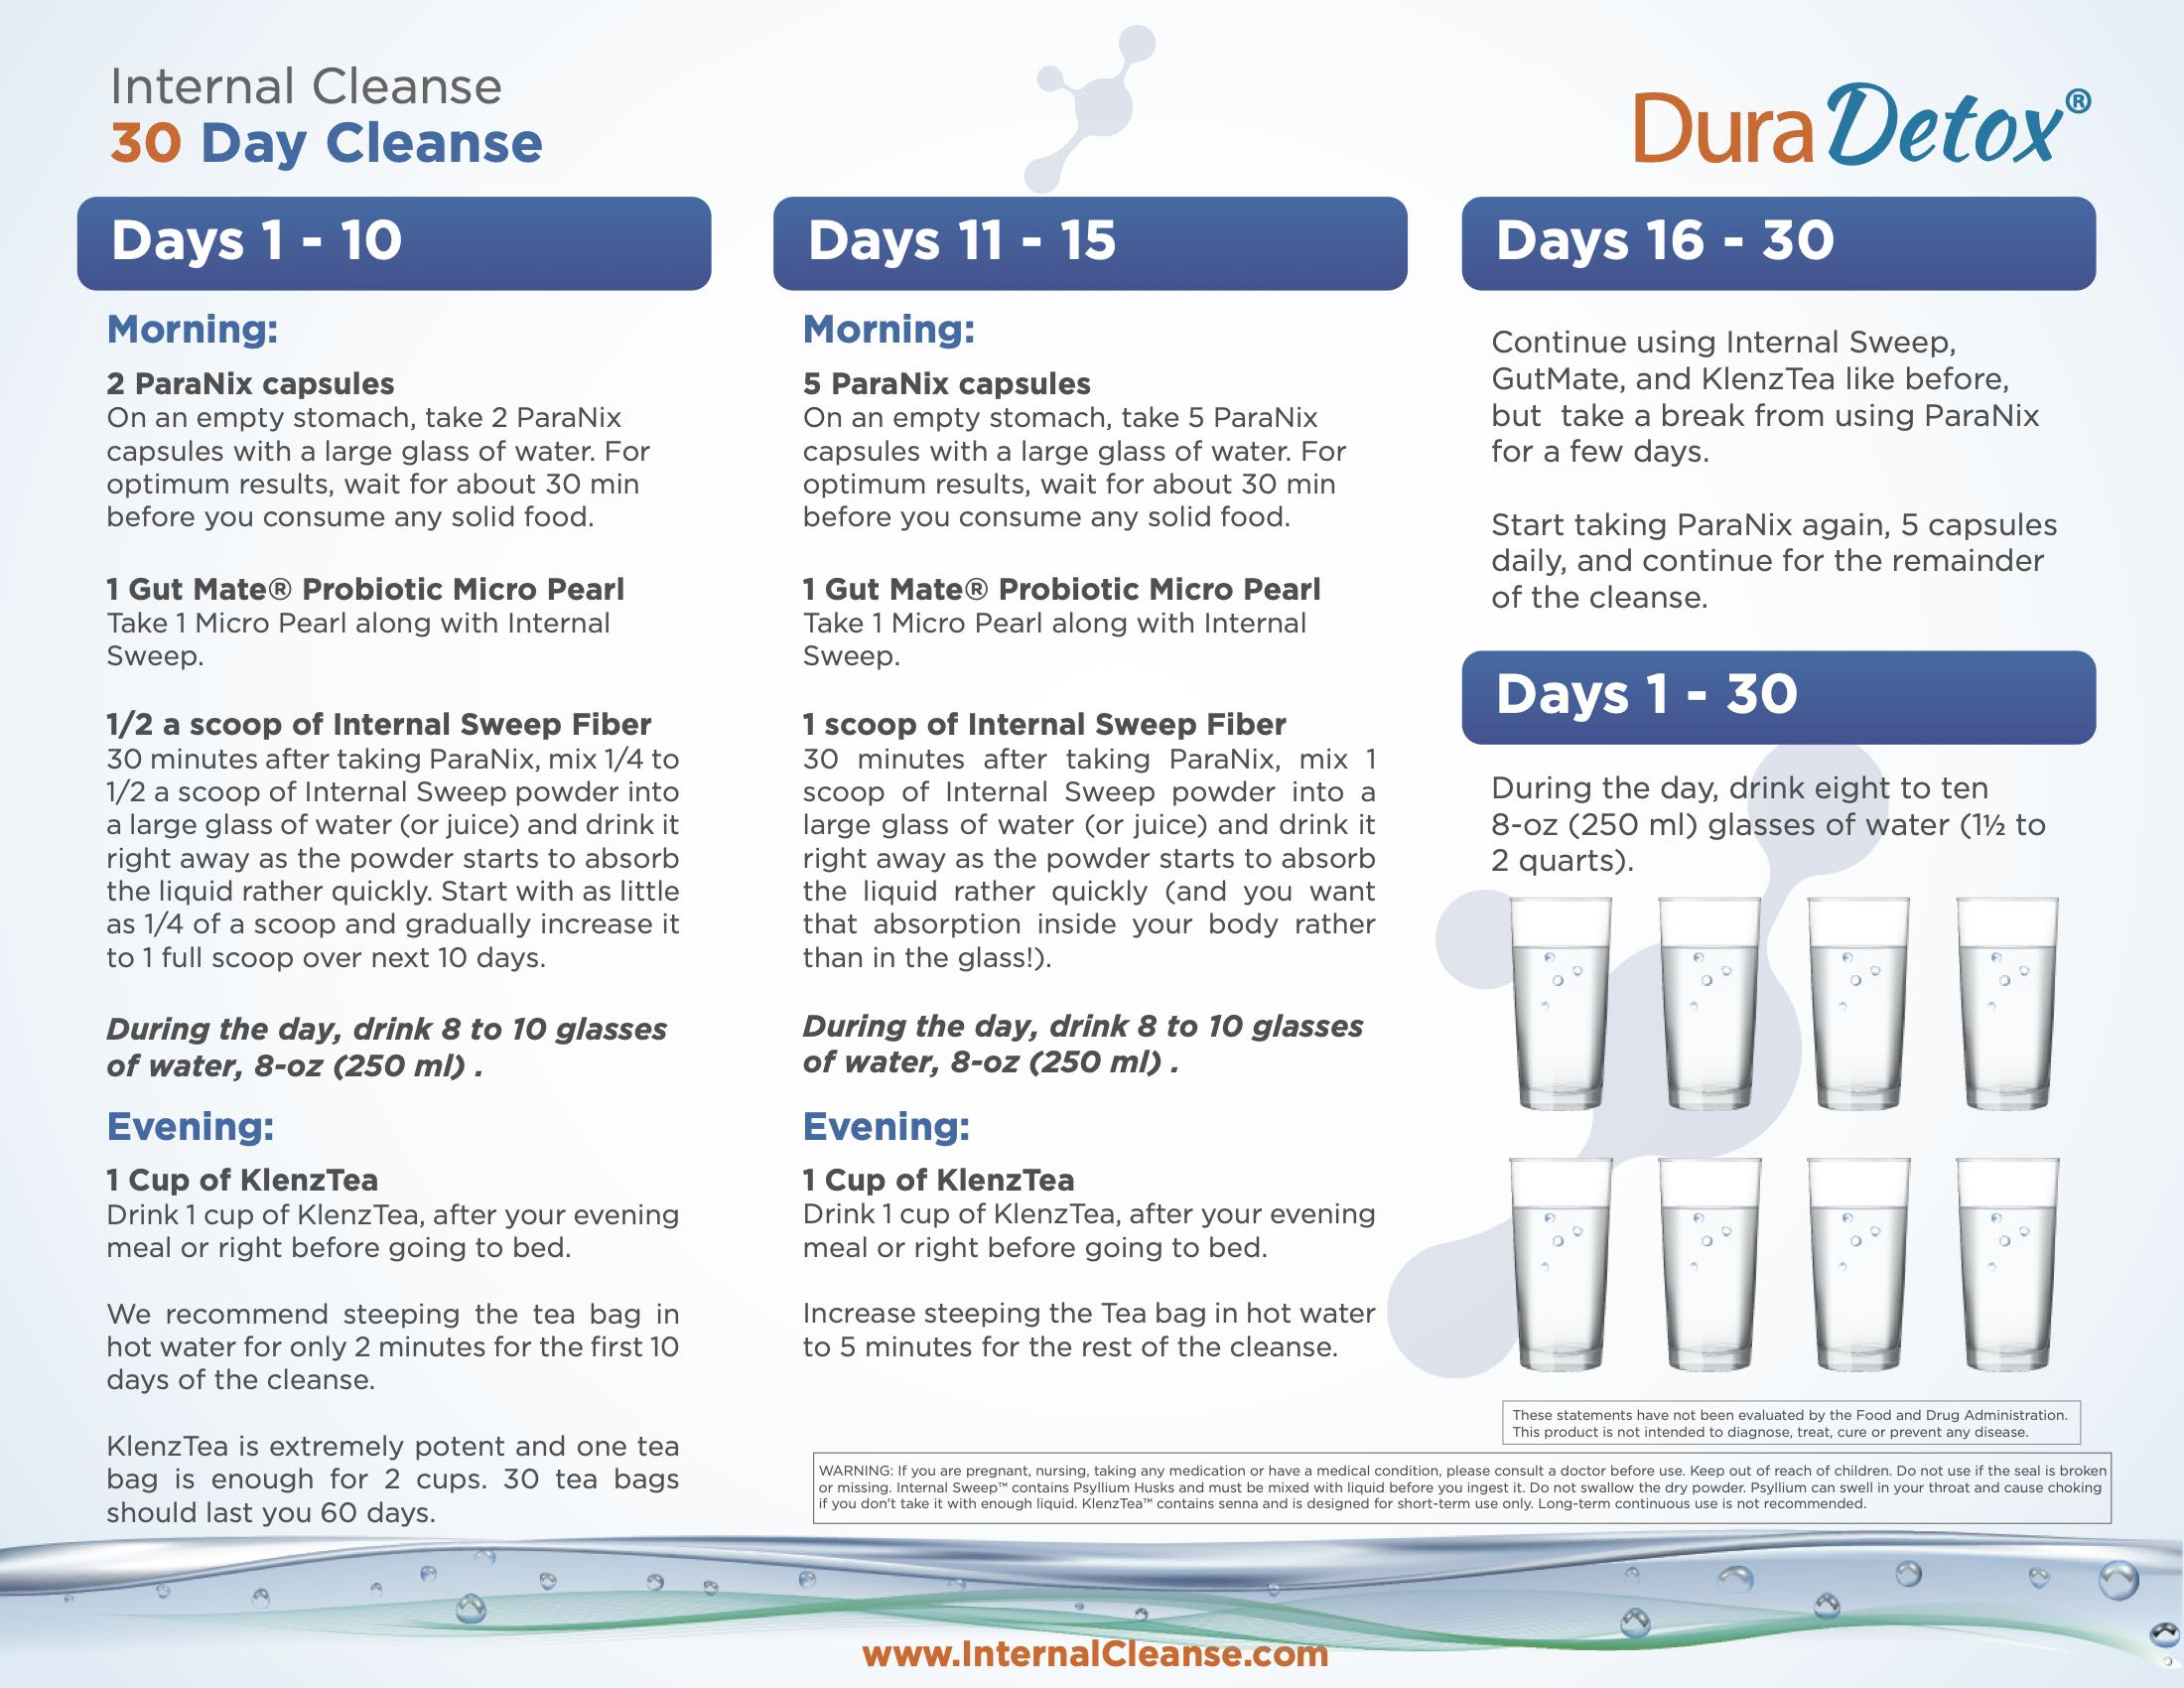 duradetox-cleanse-guide-page-3.jpg